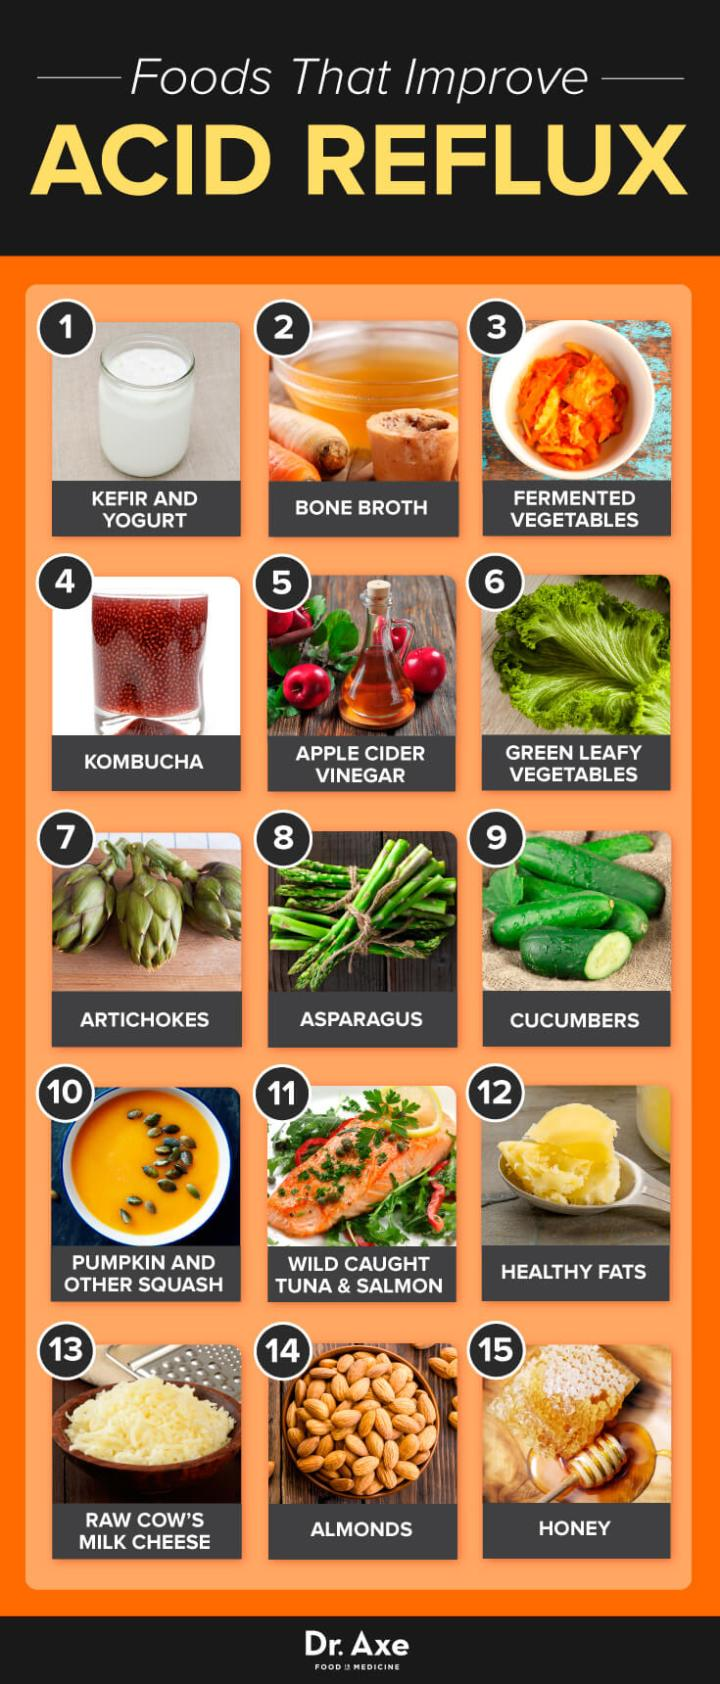 Foods that improve acid reflux symptoms - Dr. Axe